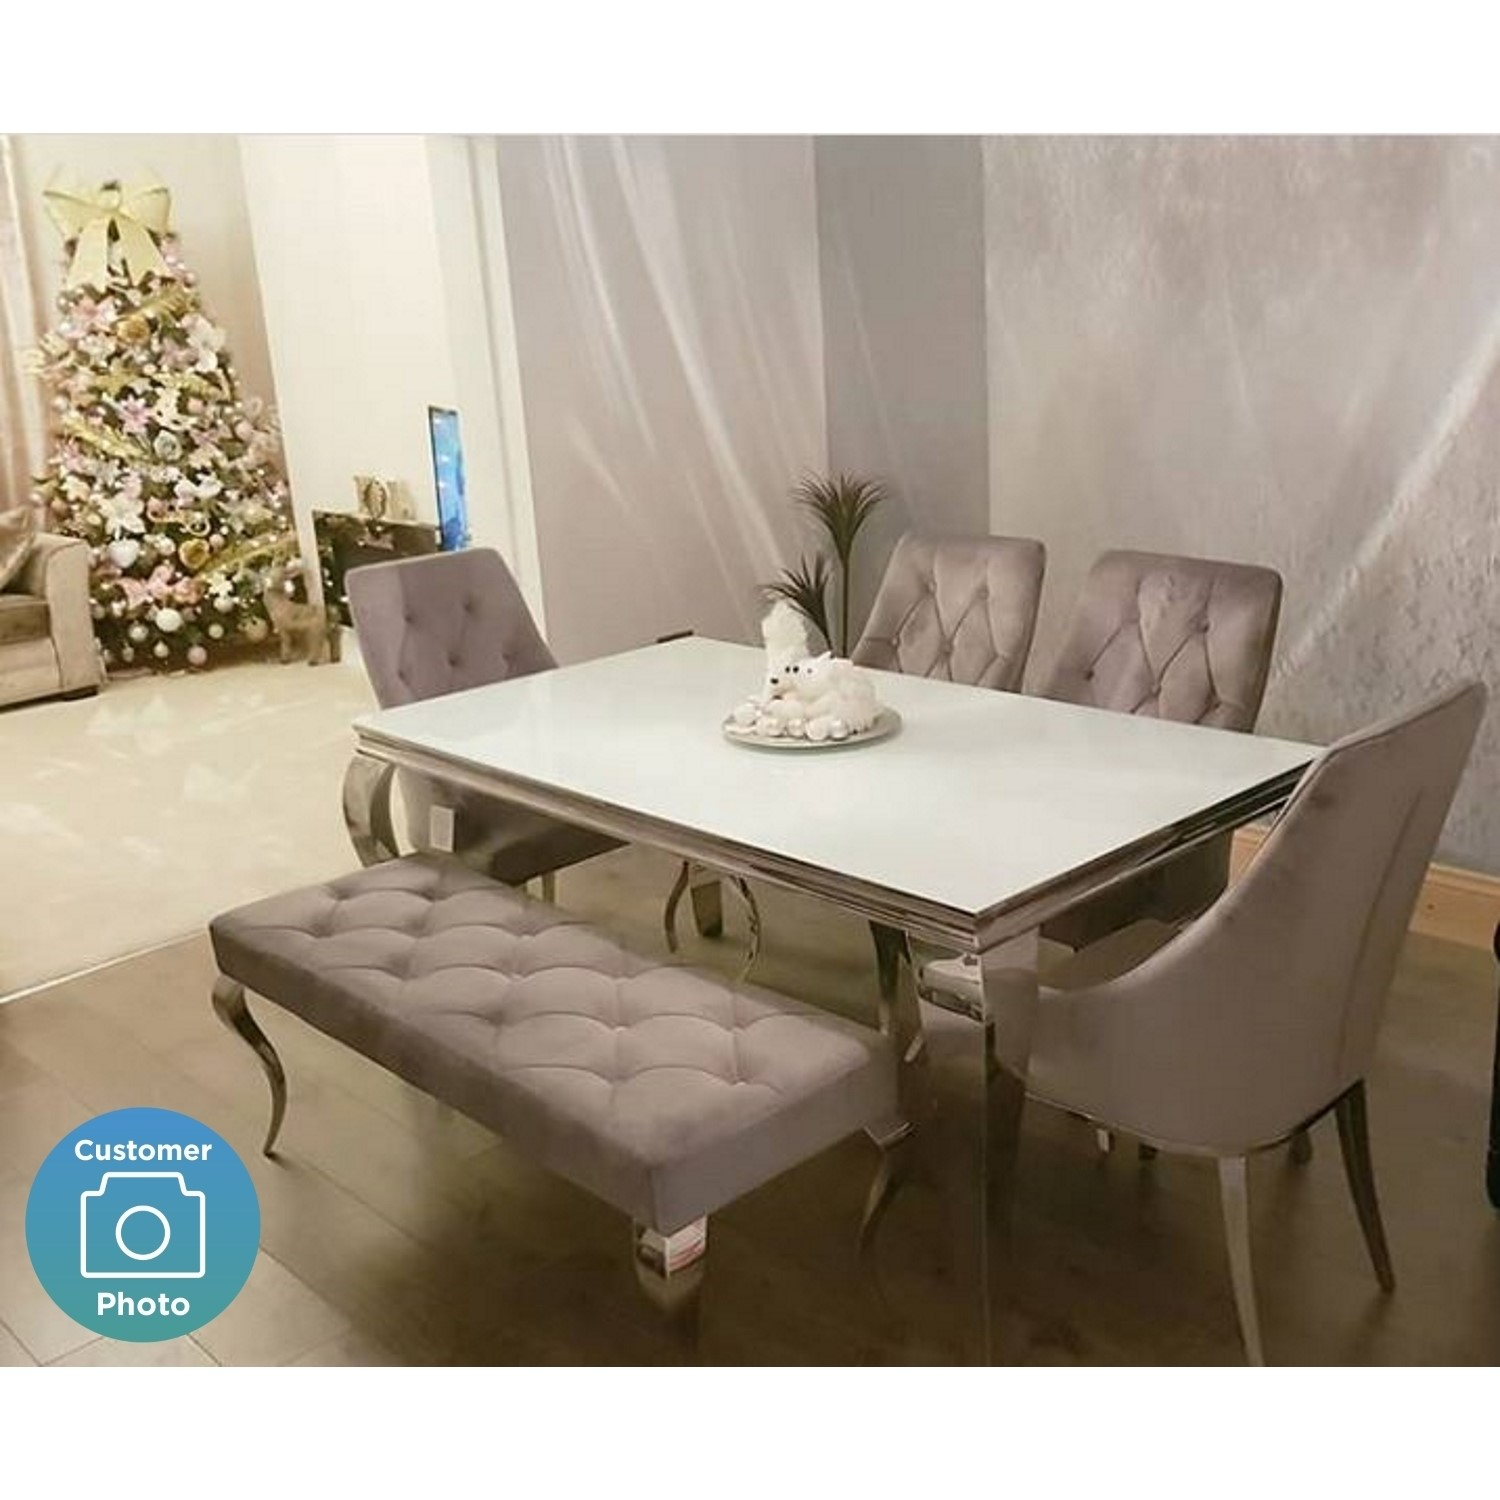 Tremendous Louis Mirrored 200Cm Dining Table With 4 Chairs And Bench In Grey Velvet Spiritservingveterans Wood Chair Design Ideas Spiritservingveteransorg